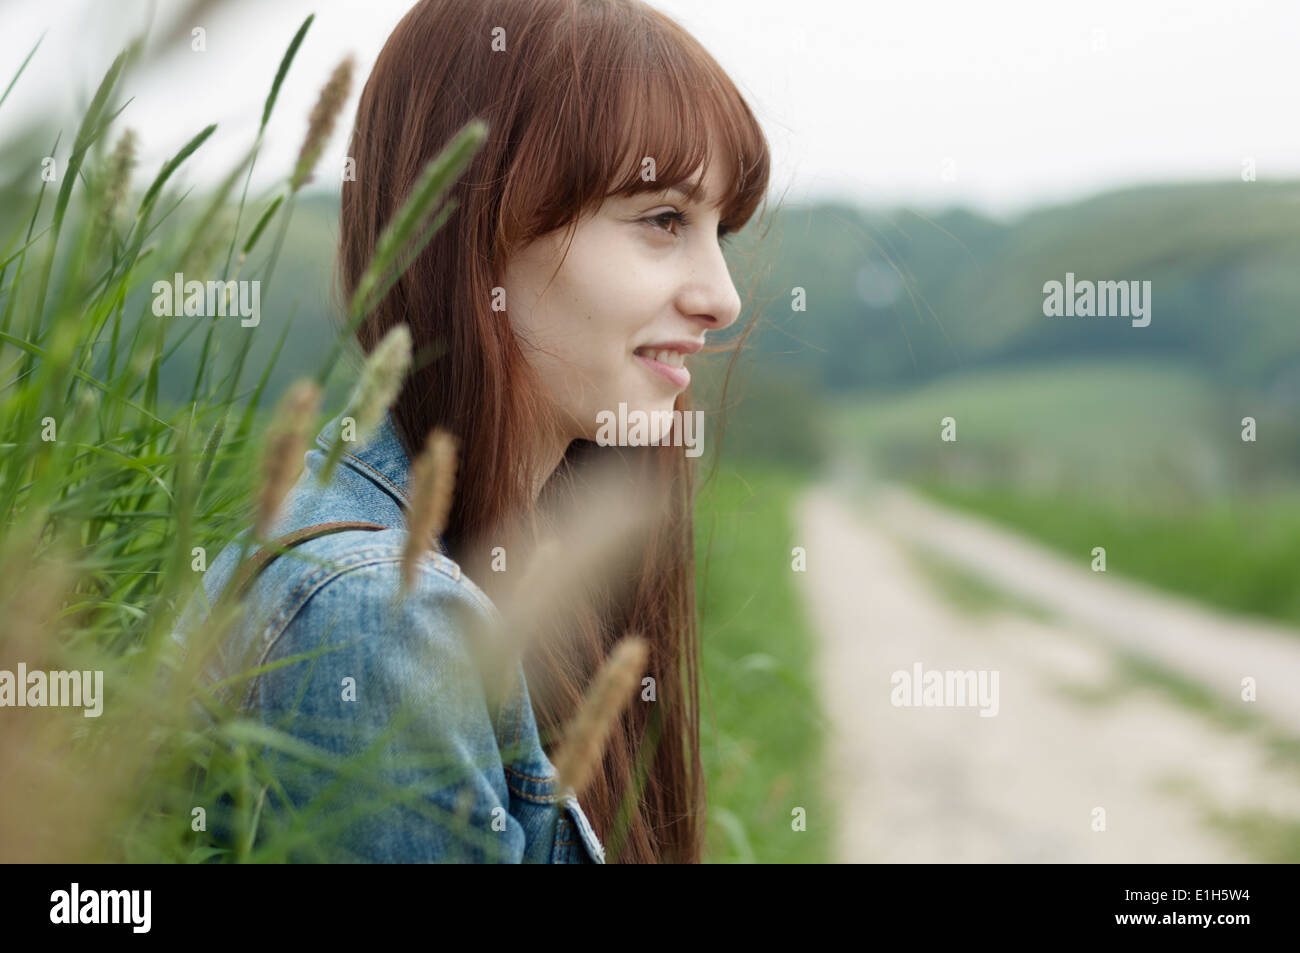 Portrait of young woman next to dirt track - Stock Image